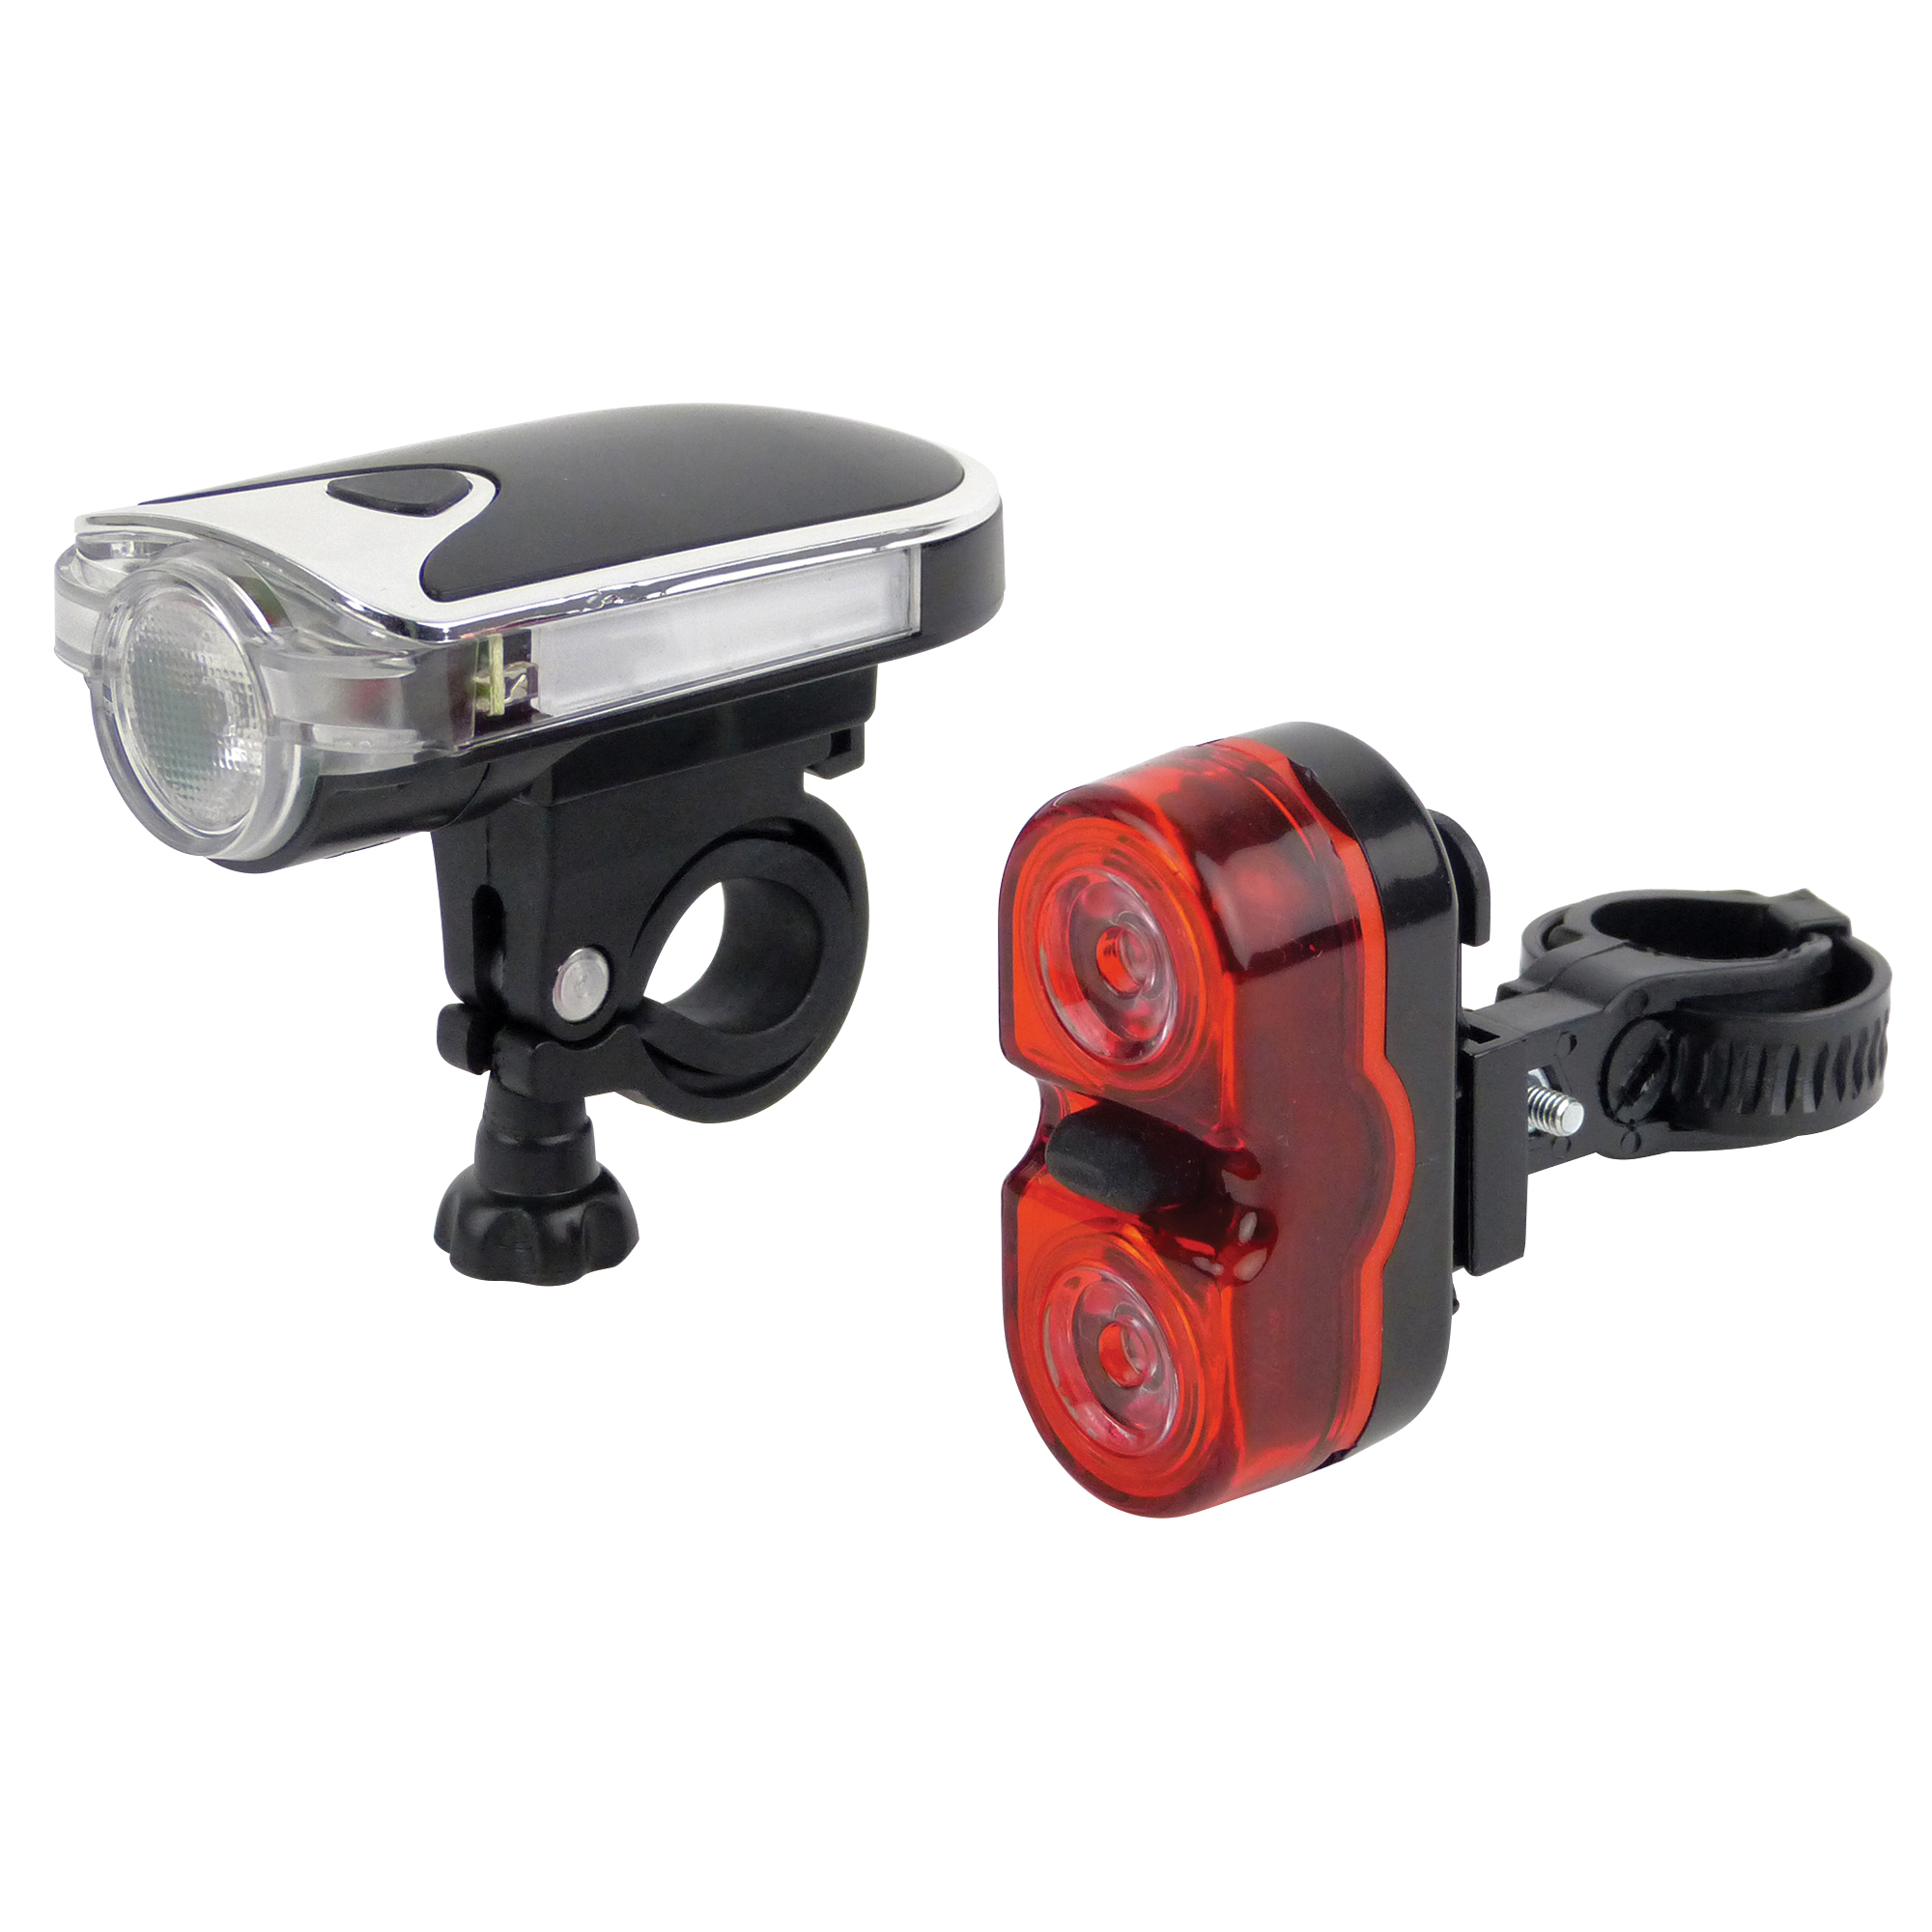 Fiets verlichtings set Led 'Mode